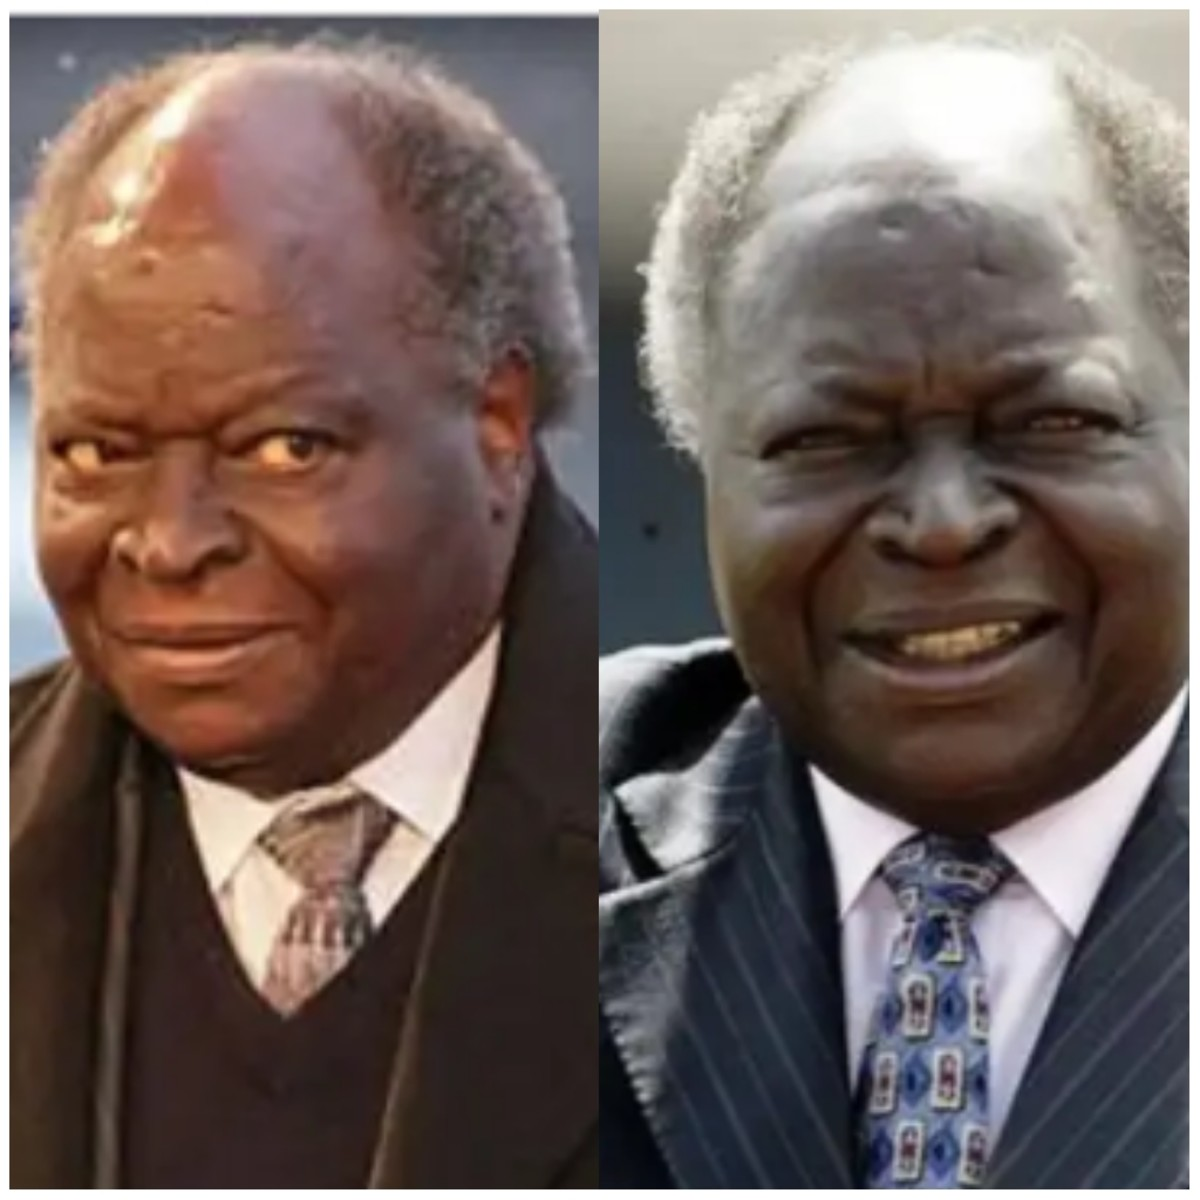 Mwai Kibaki: The Third President of Kenya